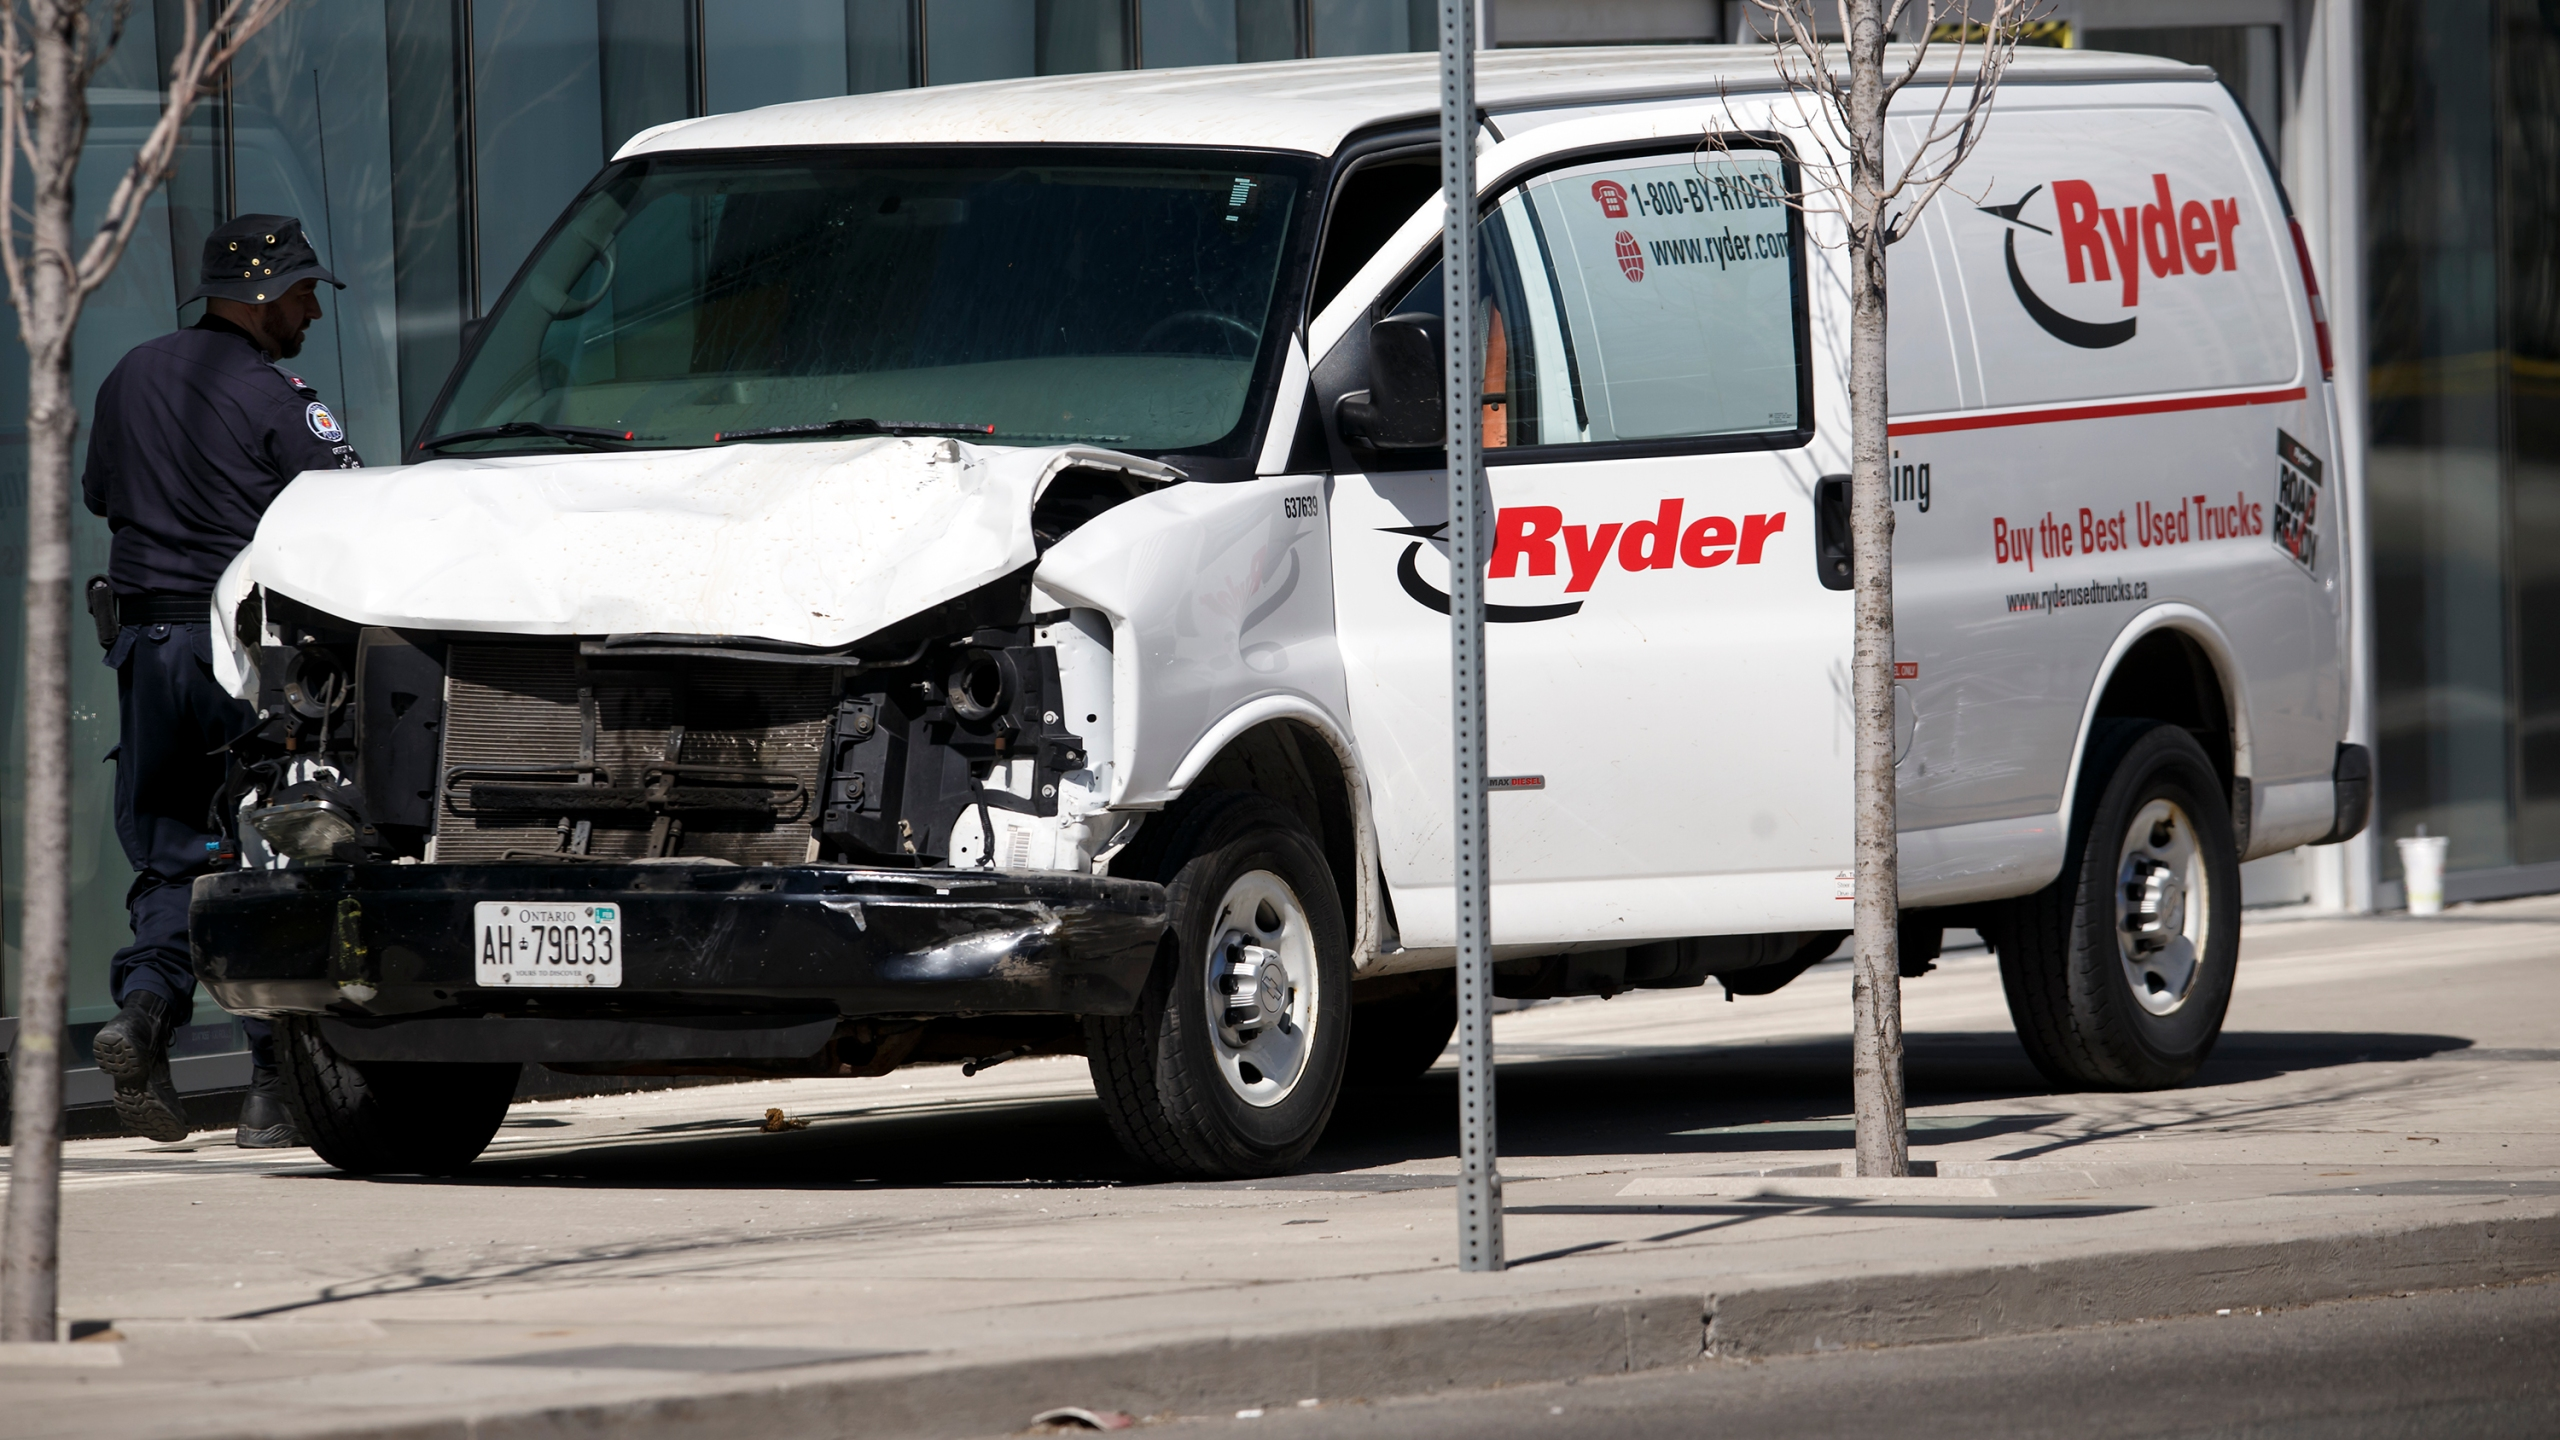 Police inspect a van suspected of being involved in a crash that injured multiple pedestrians on April 23, 2018 in Toronto, Canada. (Cole Burston/Getty Images)